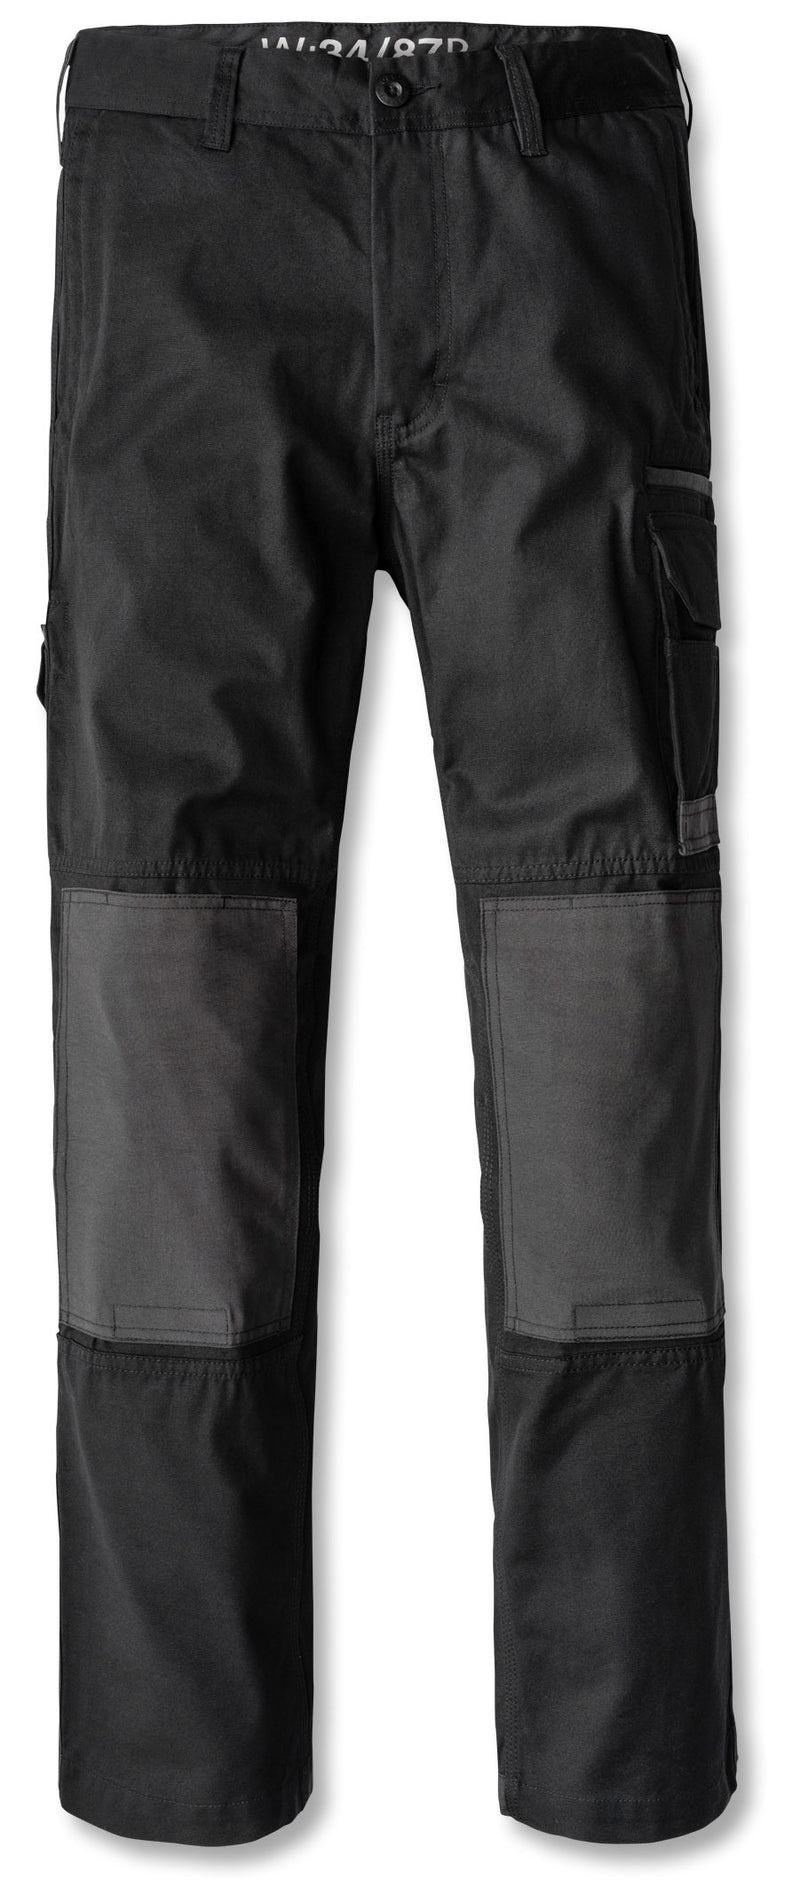 FXD WP-1 Work Pant